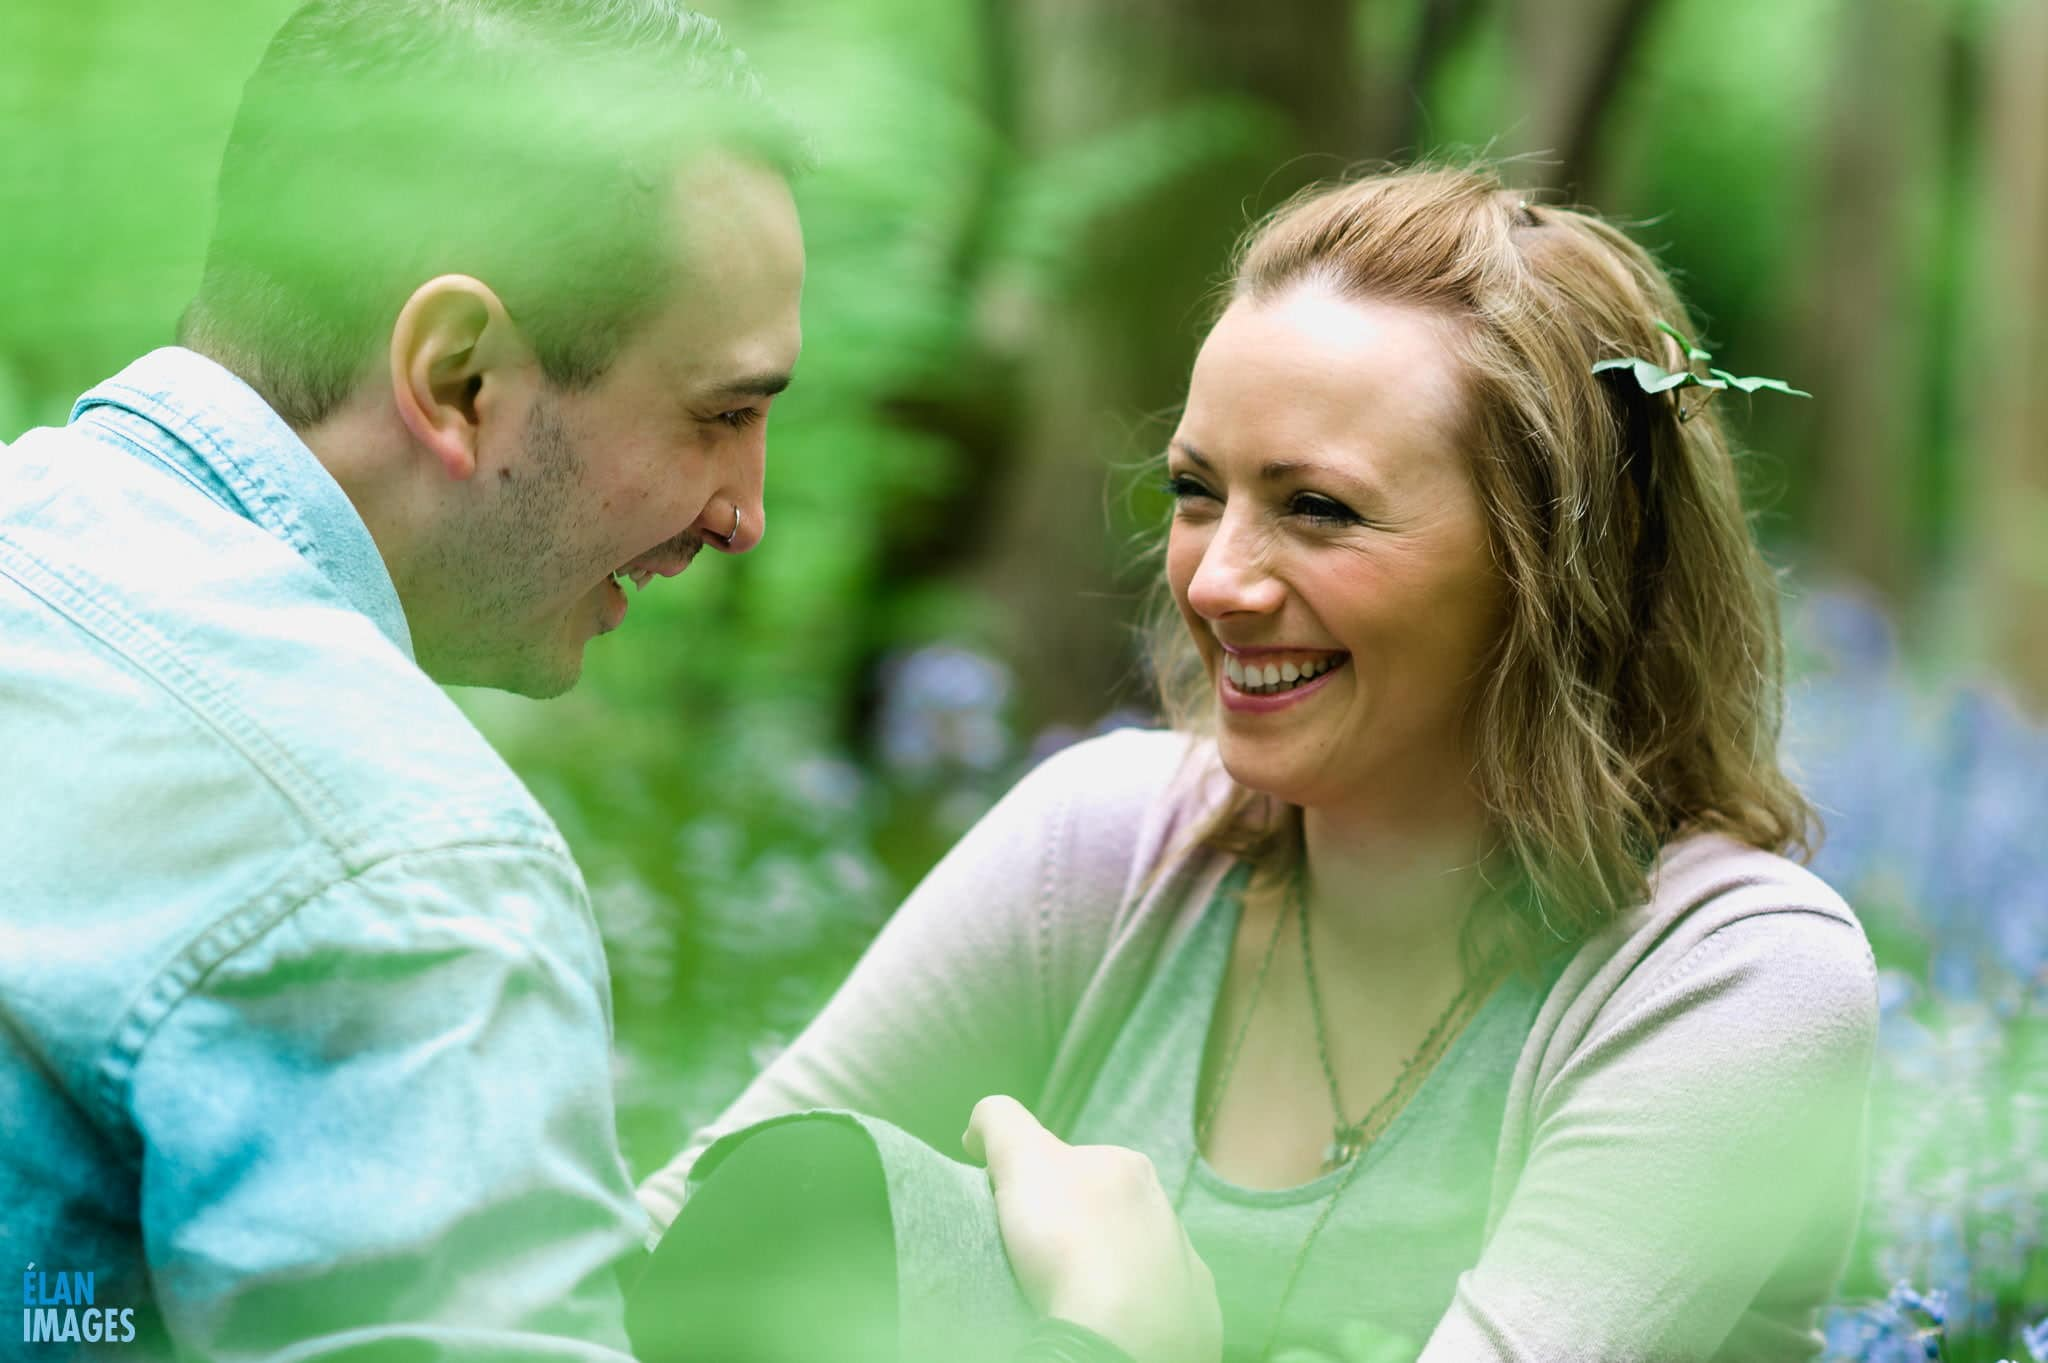 Engagement Photo Shoot in the Bluebell Woods near Bristol 15